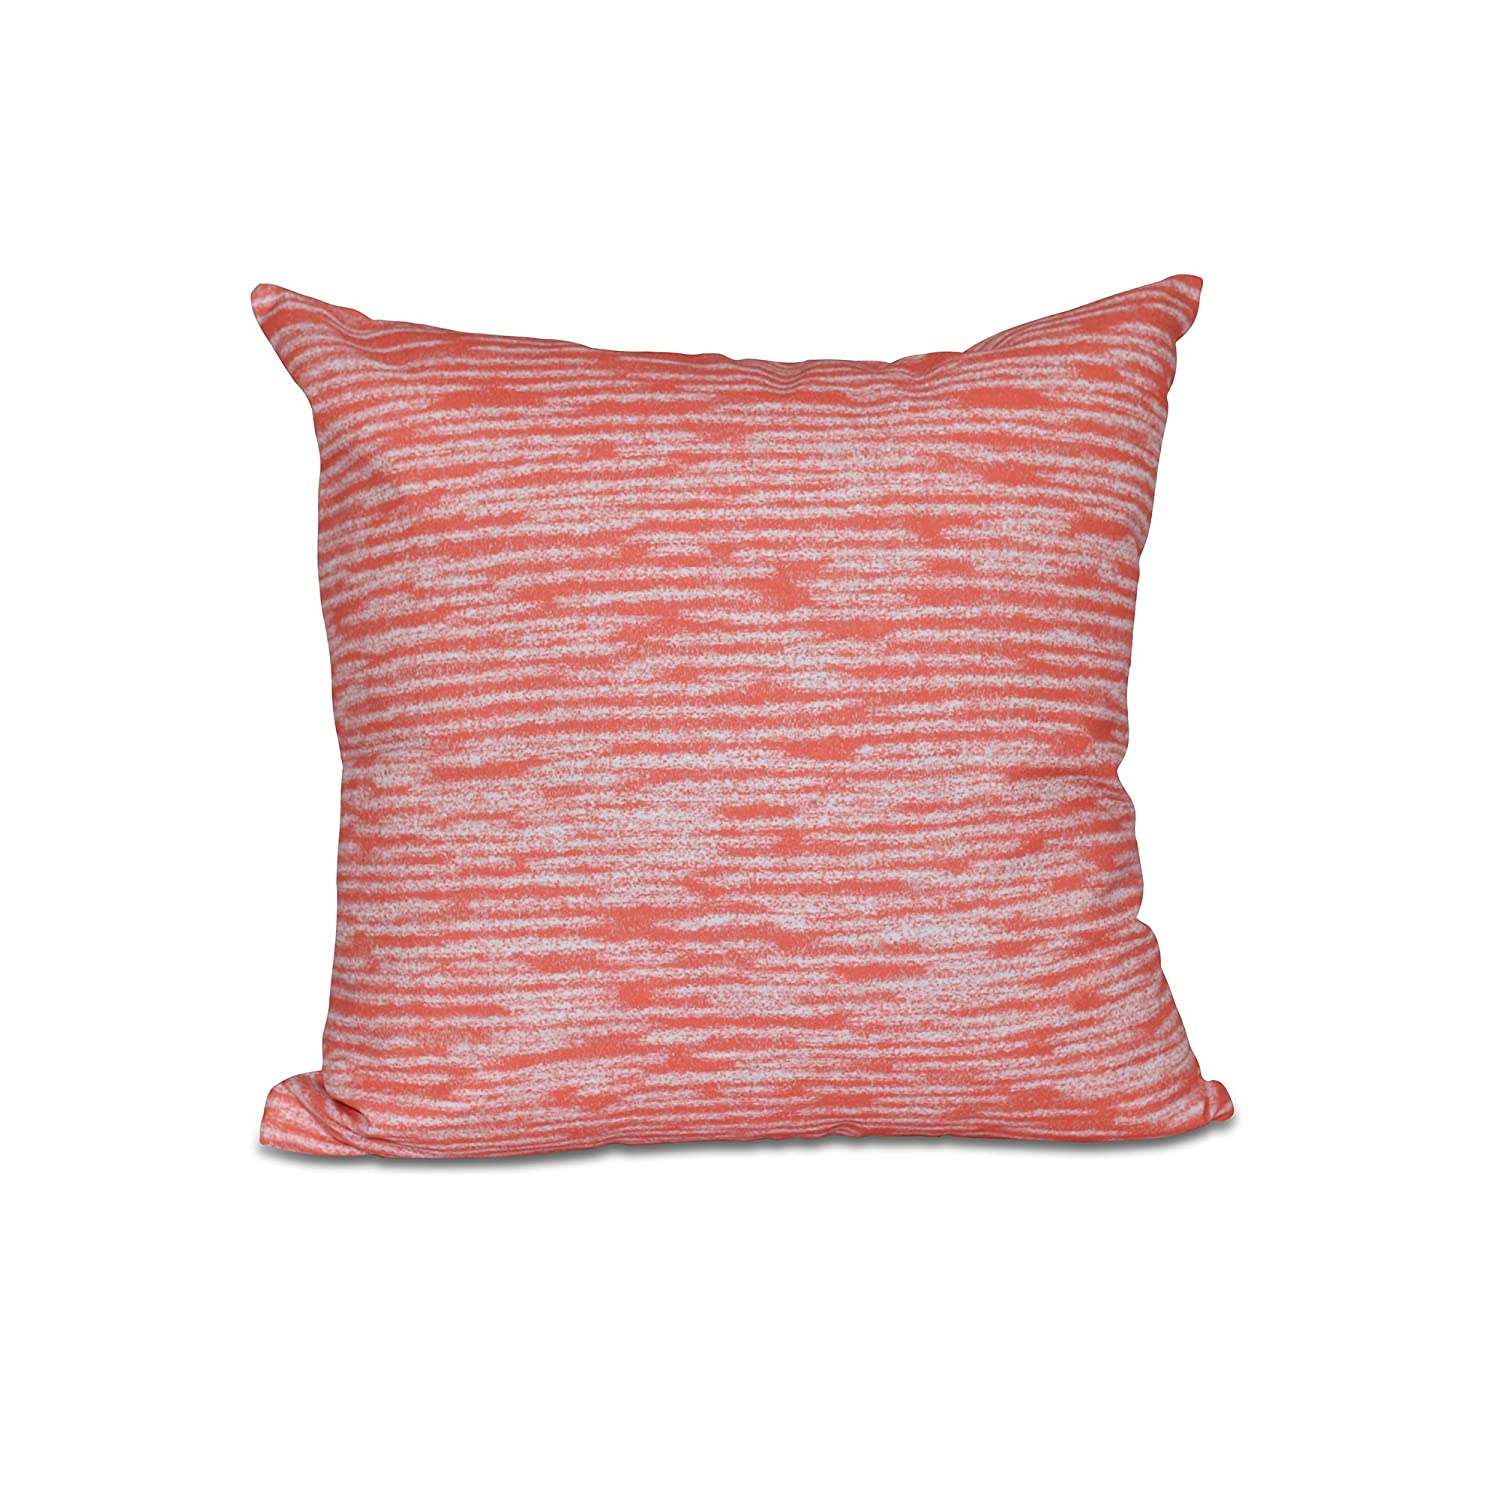 Geometric Print Pillow 16x16 Red//Orange E by design PGN451OR13-16 16 x 16-inch Marled Knit